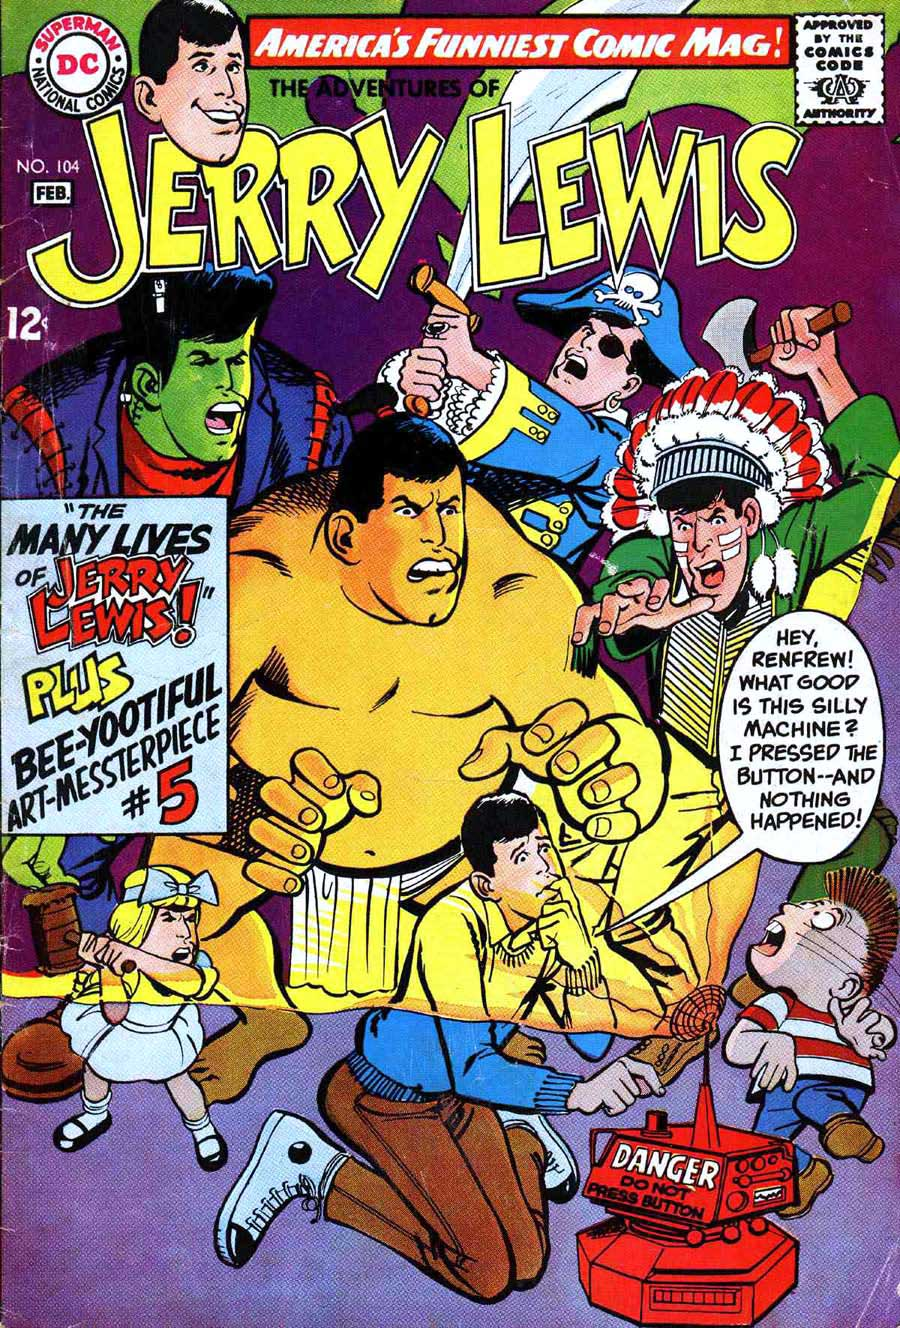 JERRY LEWIS R.I.P.